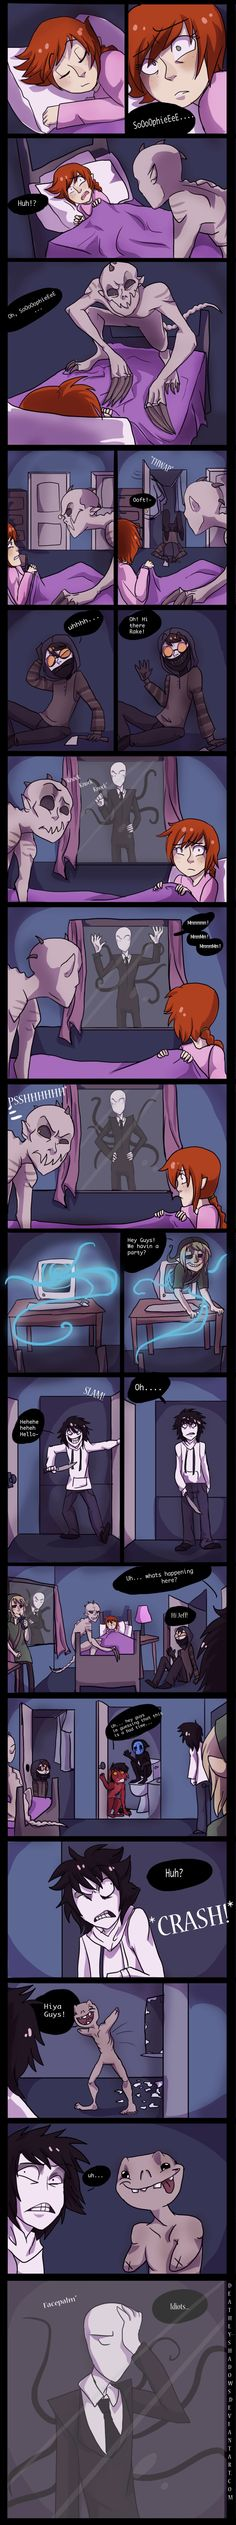 Creepypasta. love this!